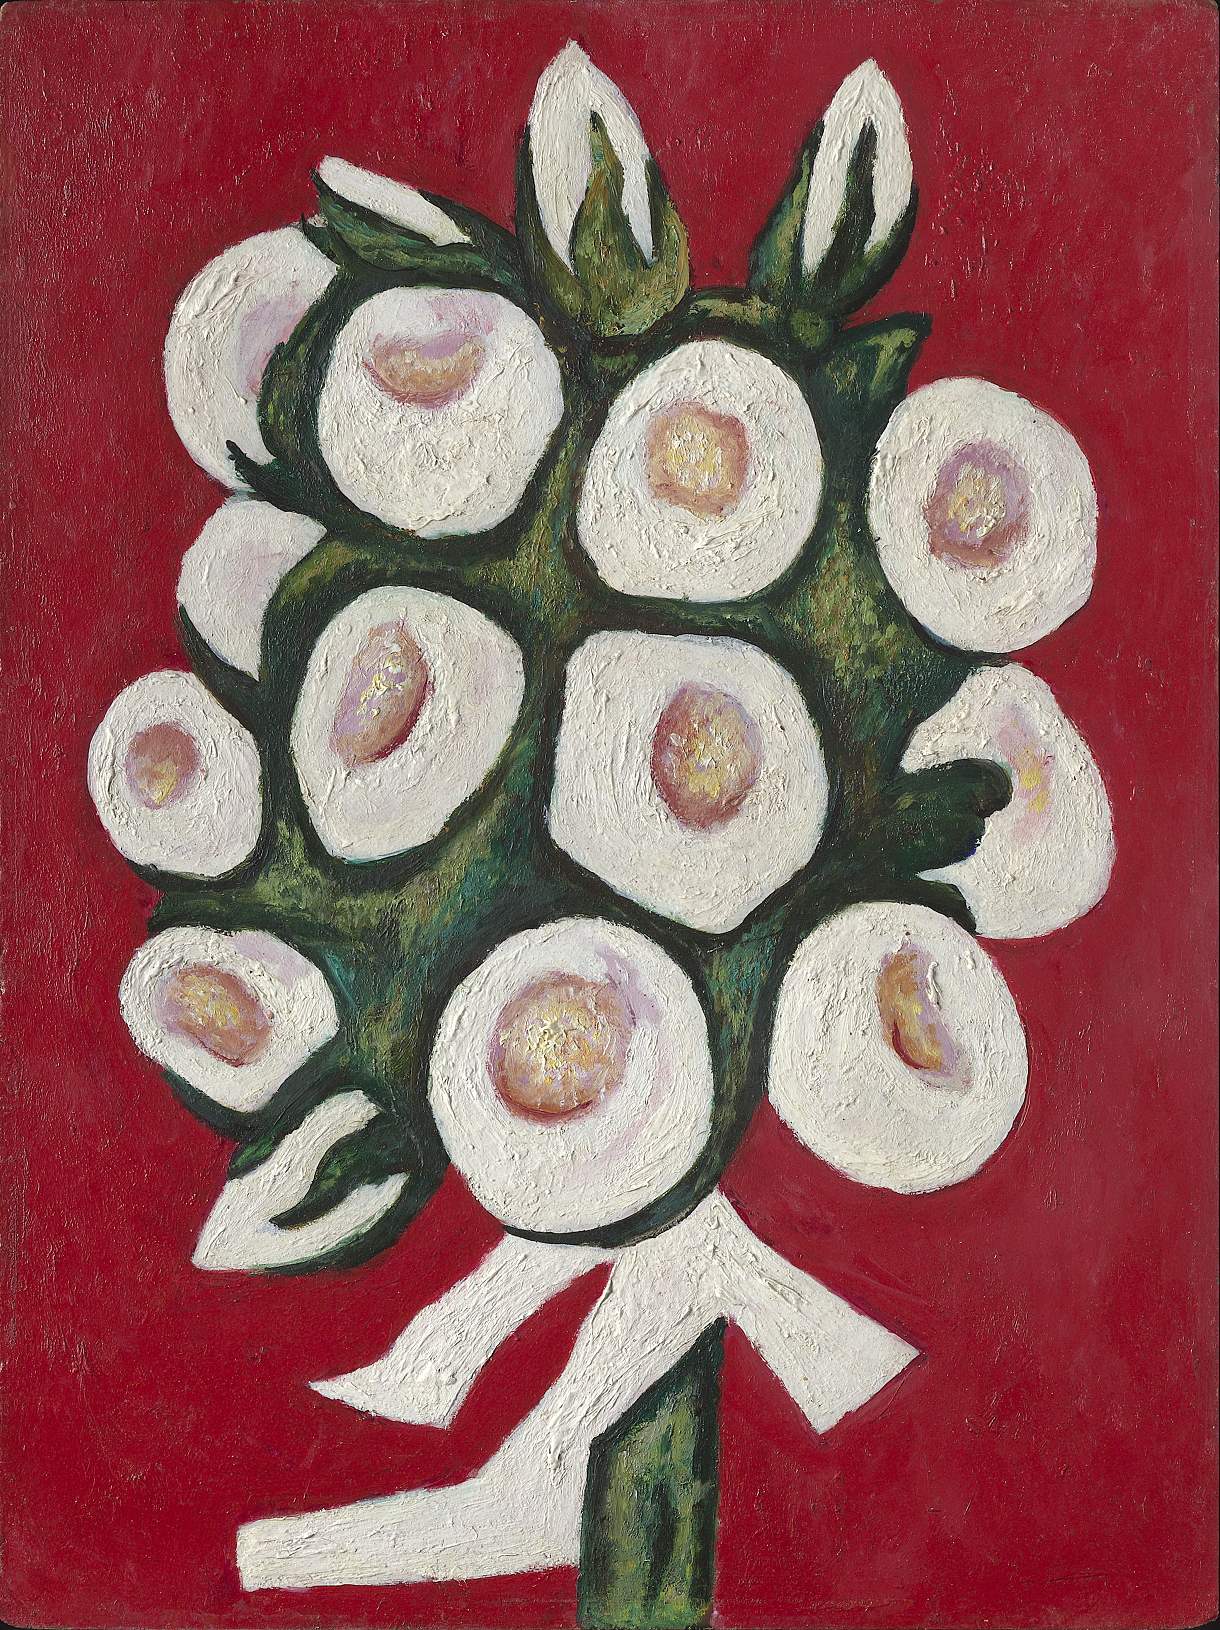 Roses for Seagulls that Lost Their Way, 1936 — Marsden Hartley